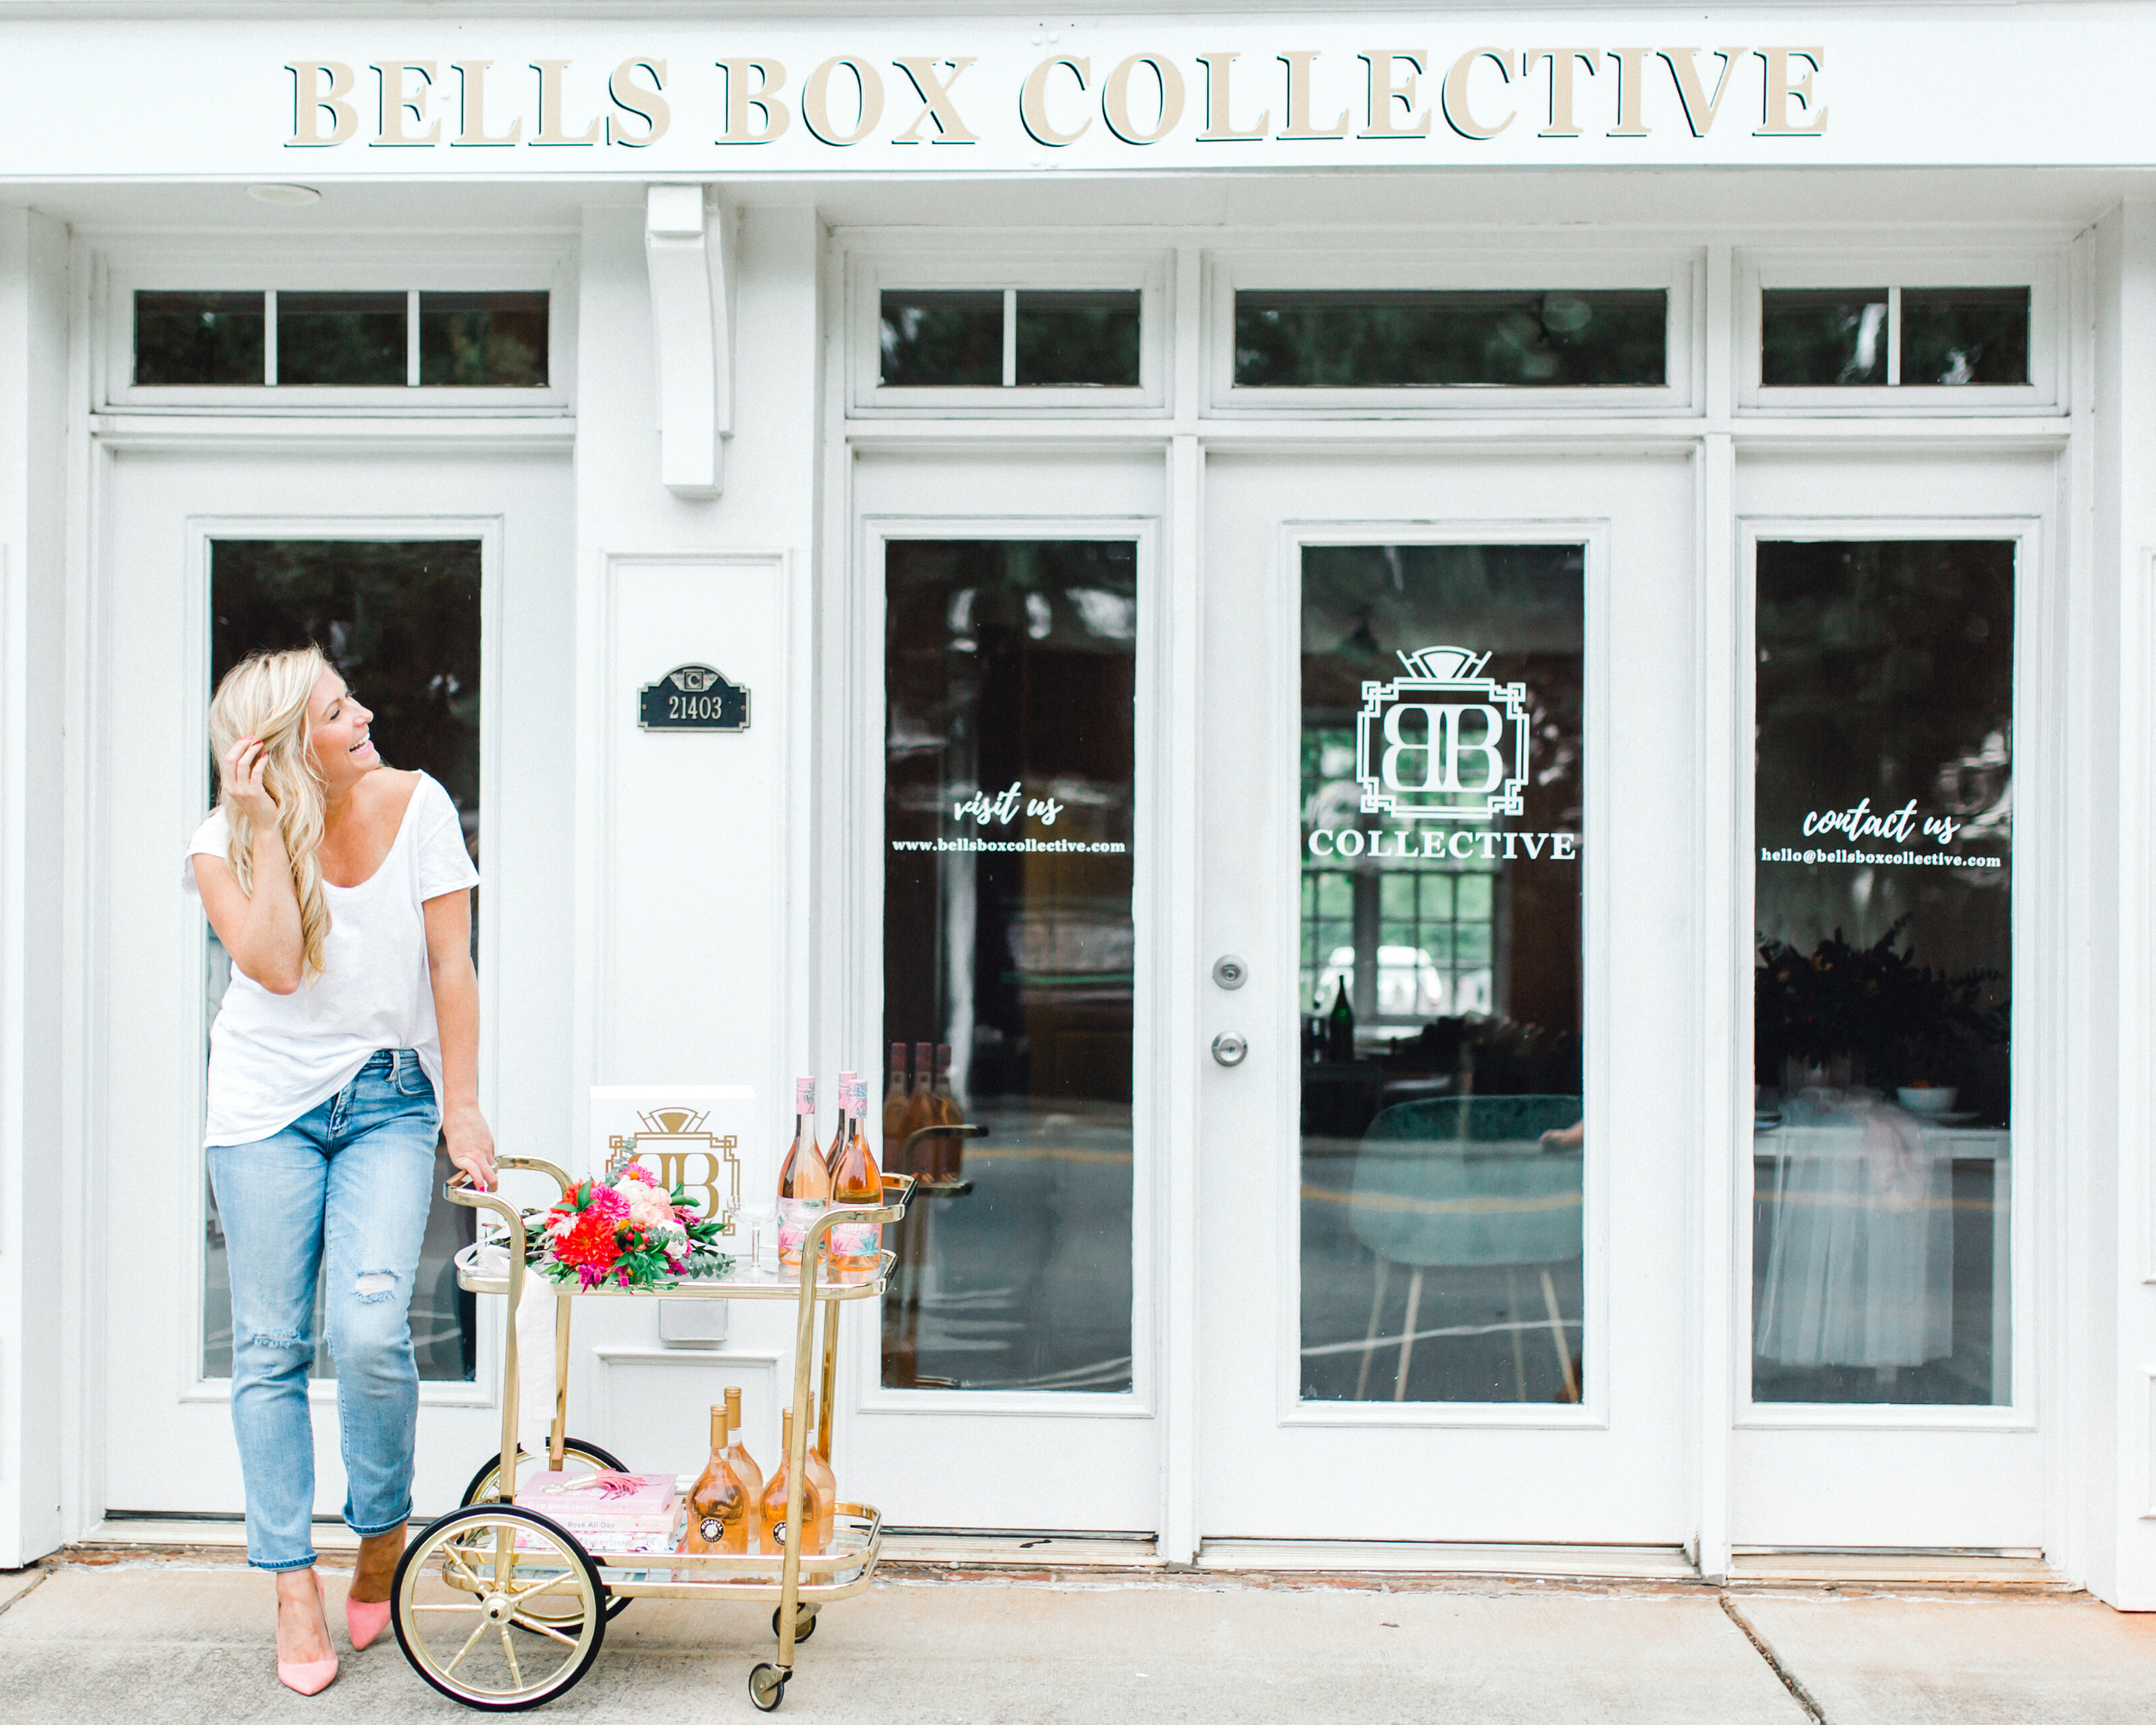 About Bells Box Collective